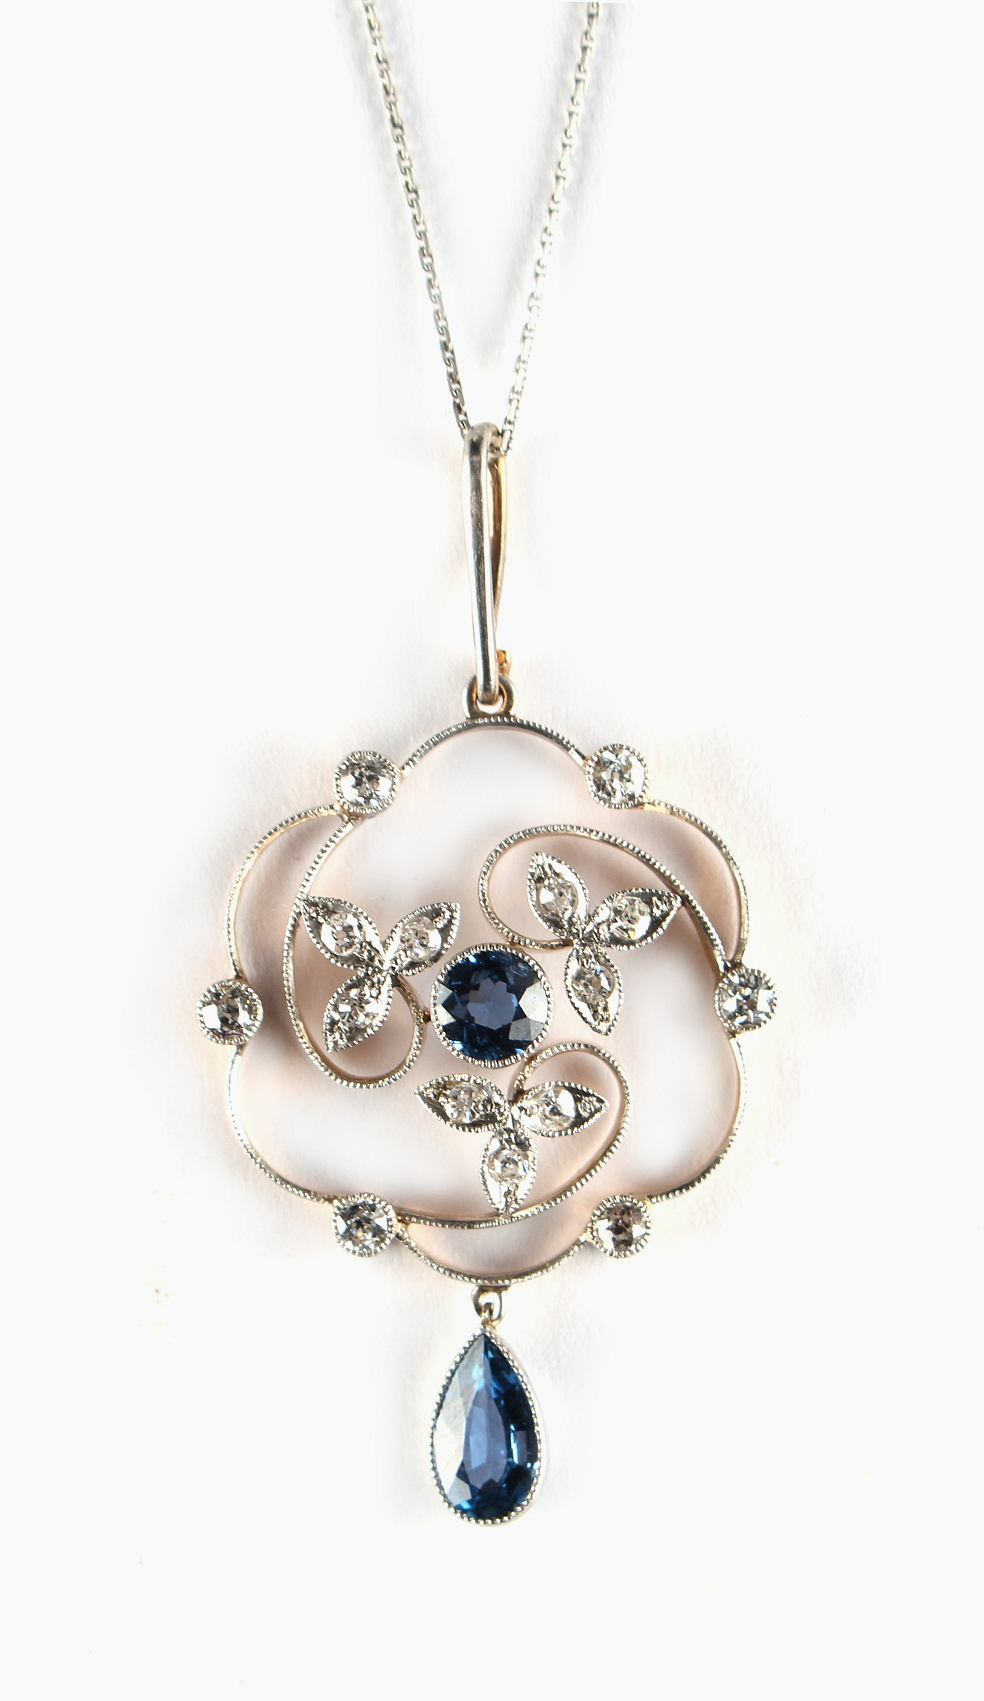 Lot 260 - An early 20th century Belle Epoque sapphire & diamond floral open work pendant on later chain, the